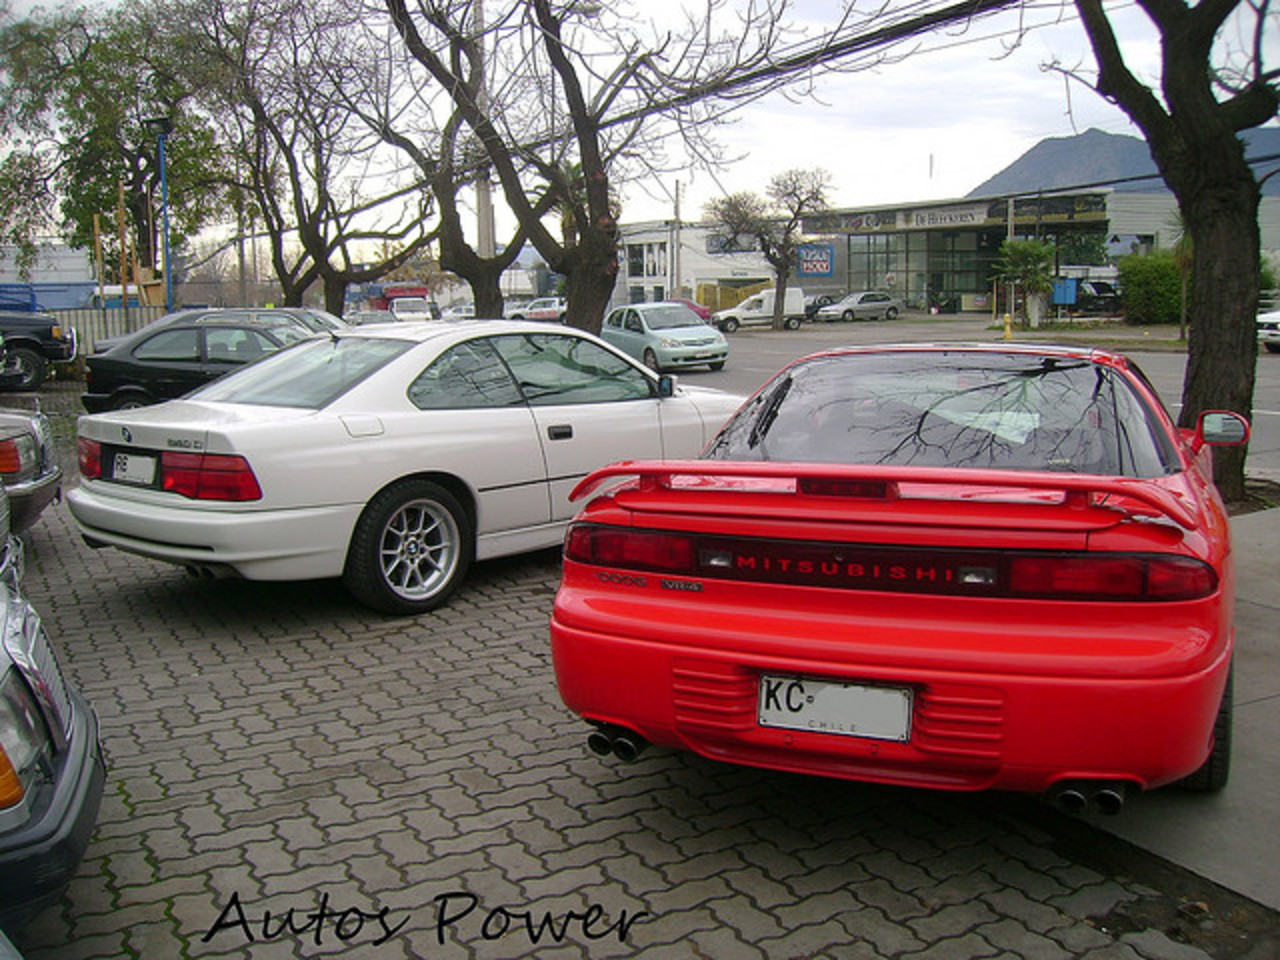 BMW 840i & Mitsubishi 3000GT VR-4 | Flickr - Photo Sharing!